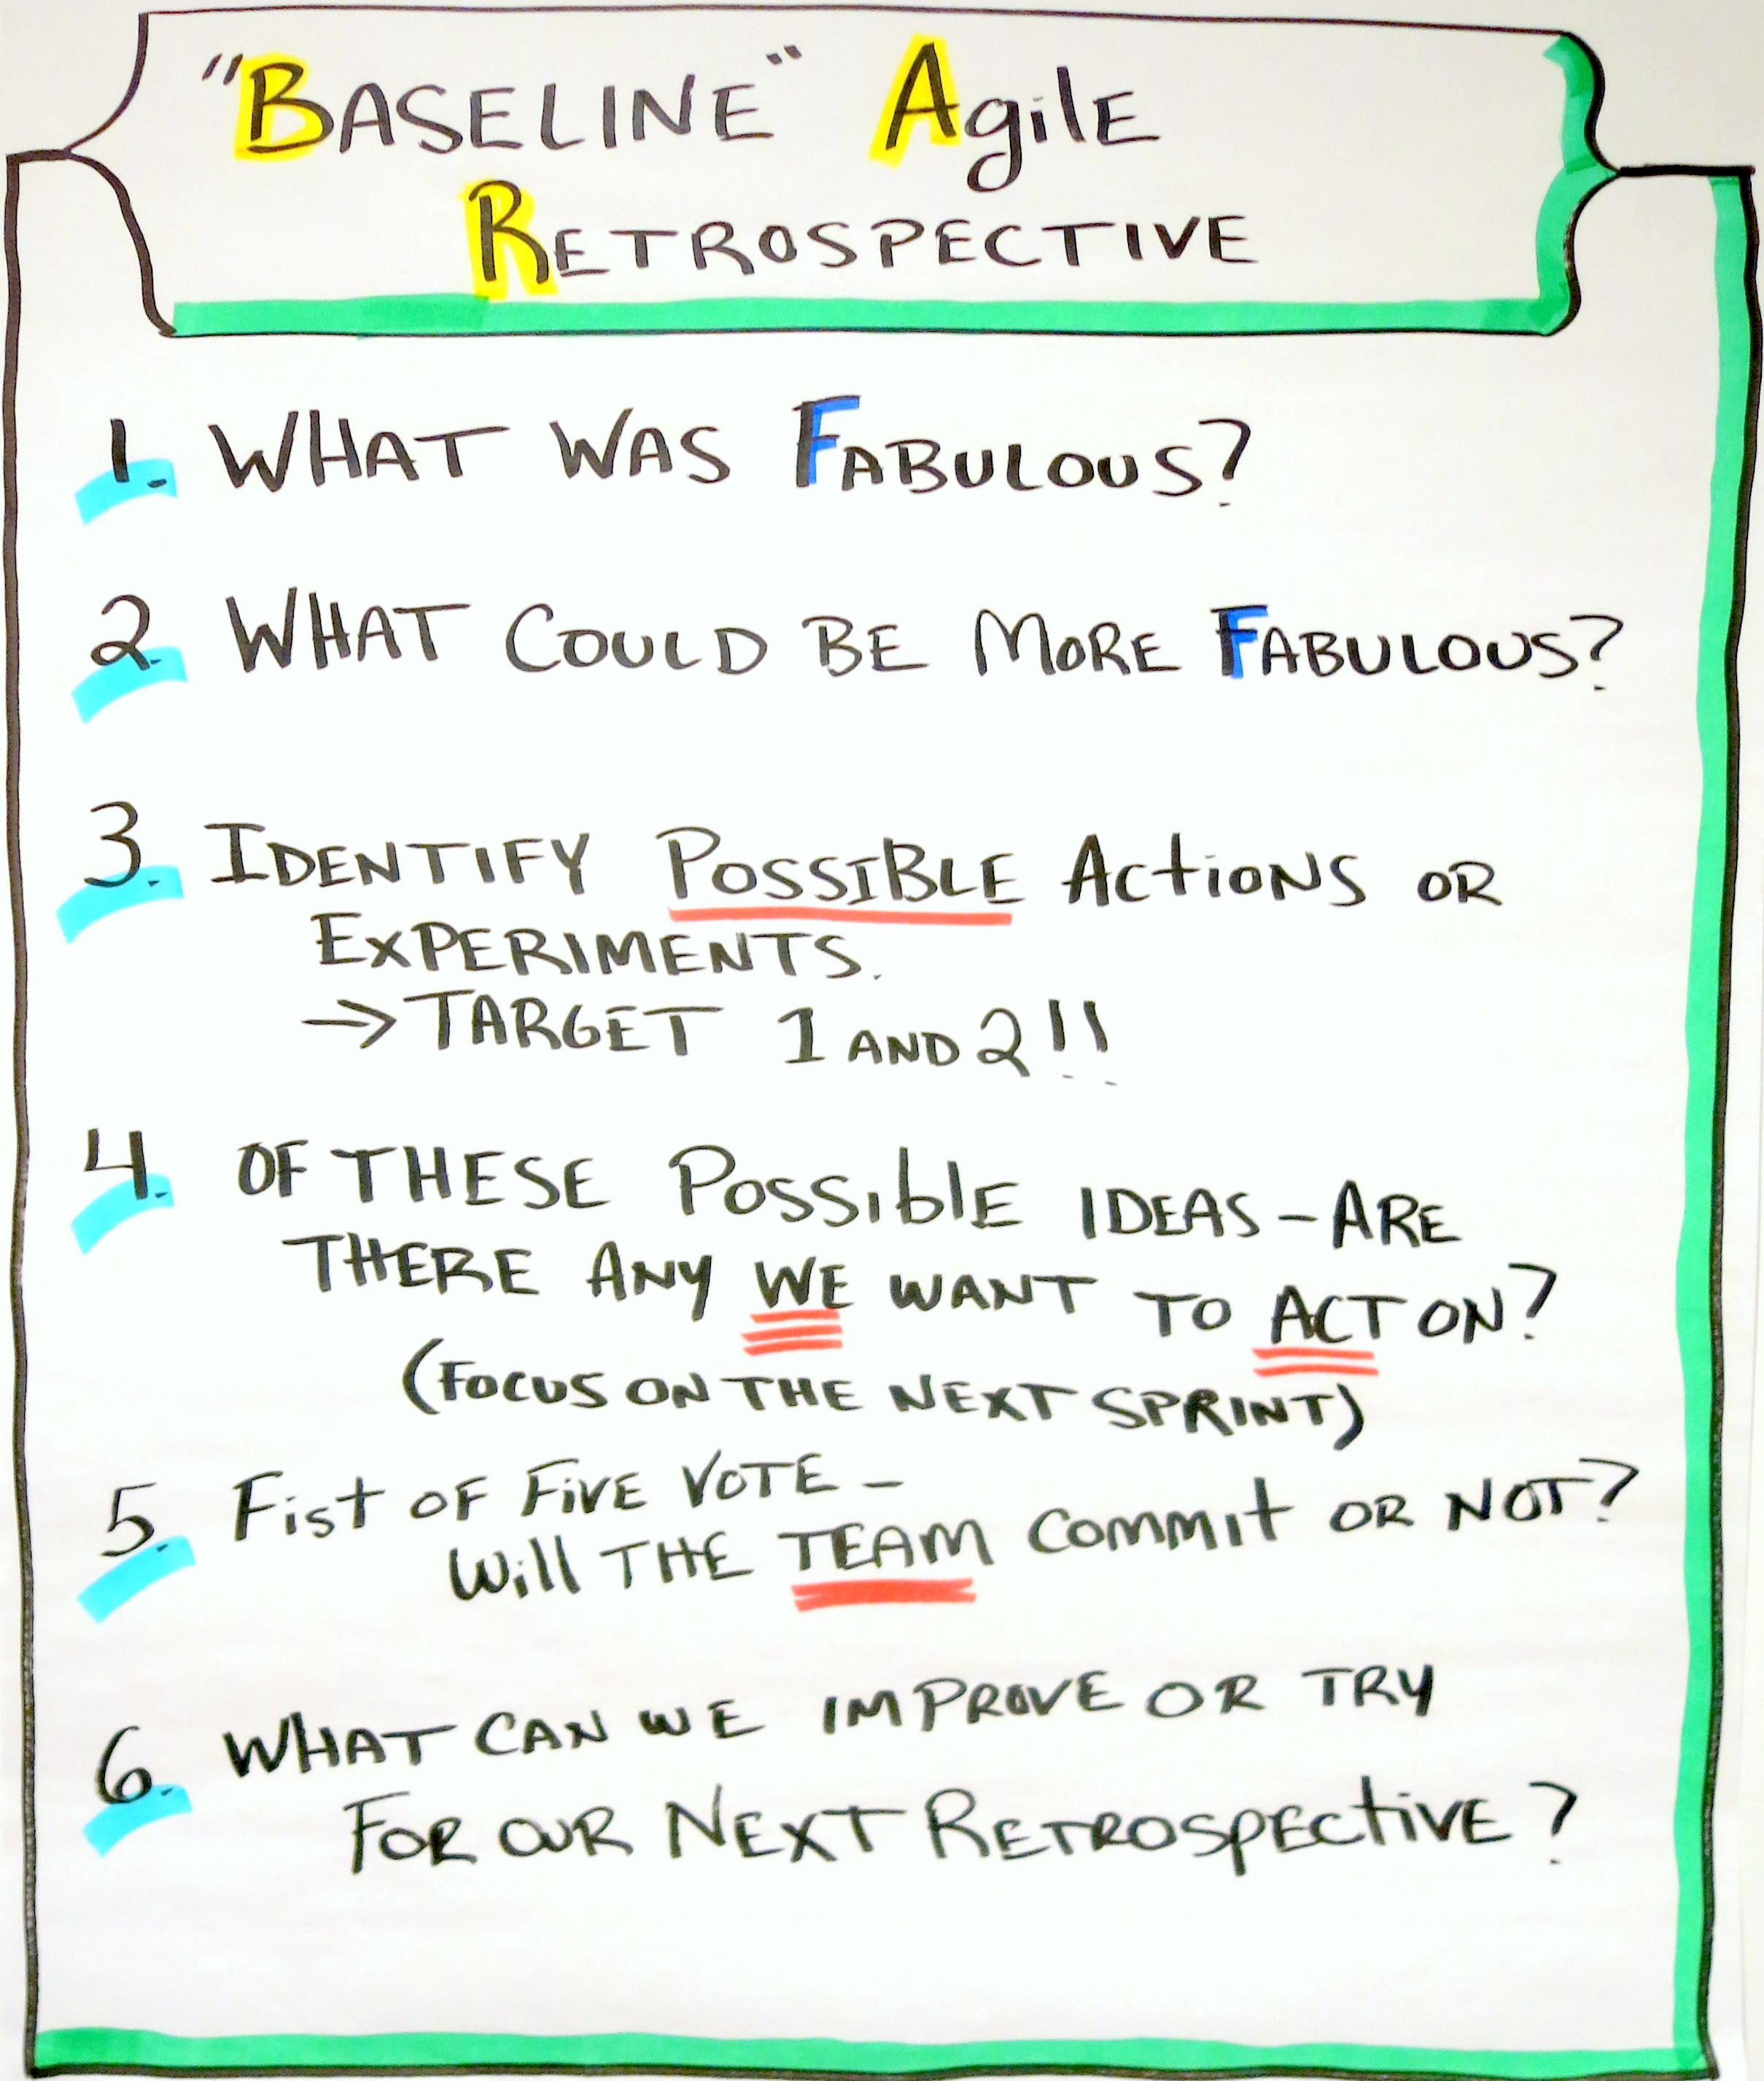 The Real Baseline Agile Retrospective Format